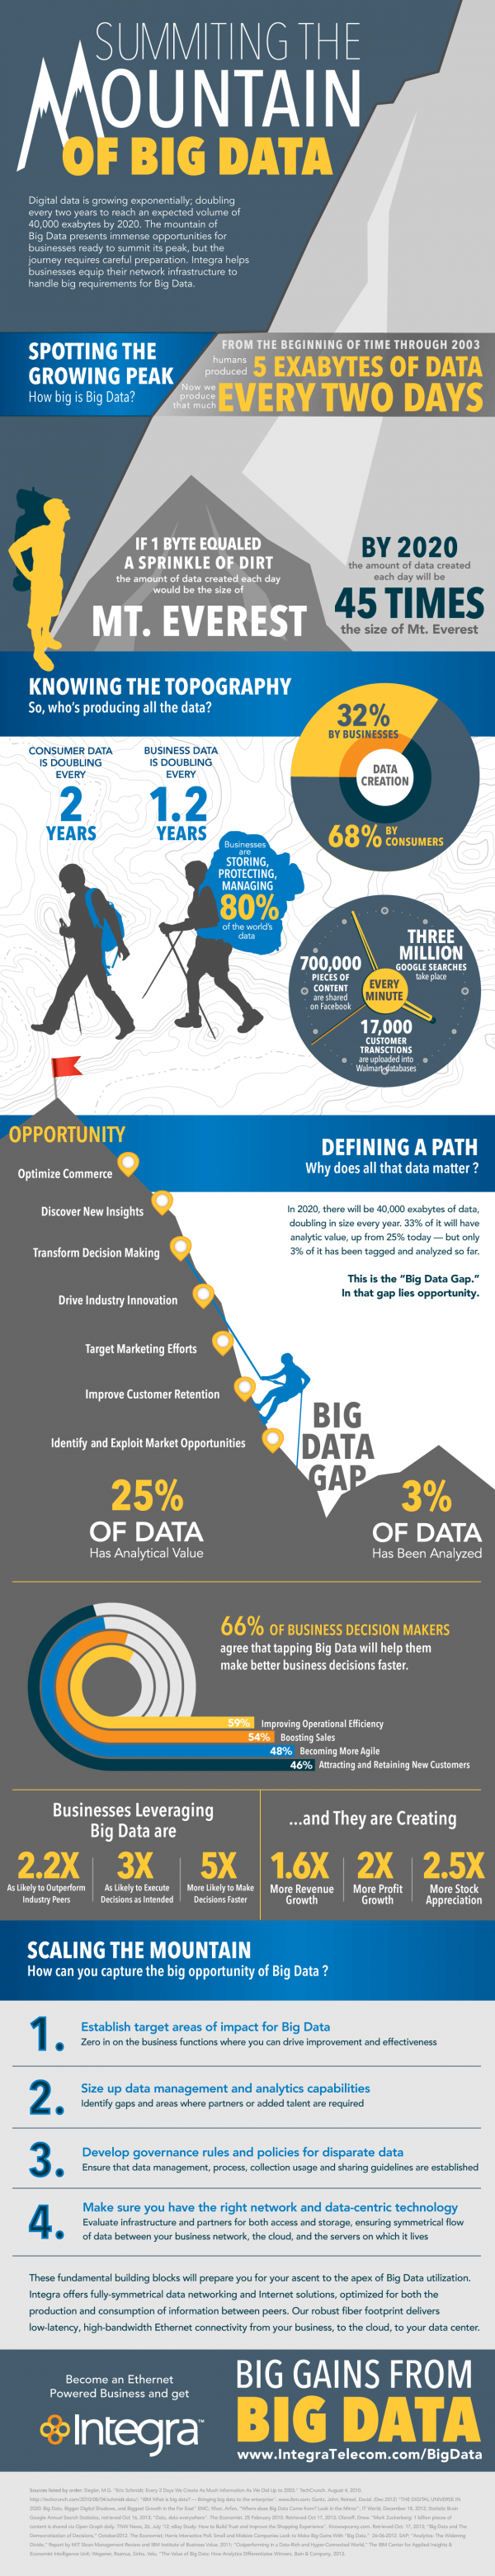 Summiting the Mountain of Big Data